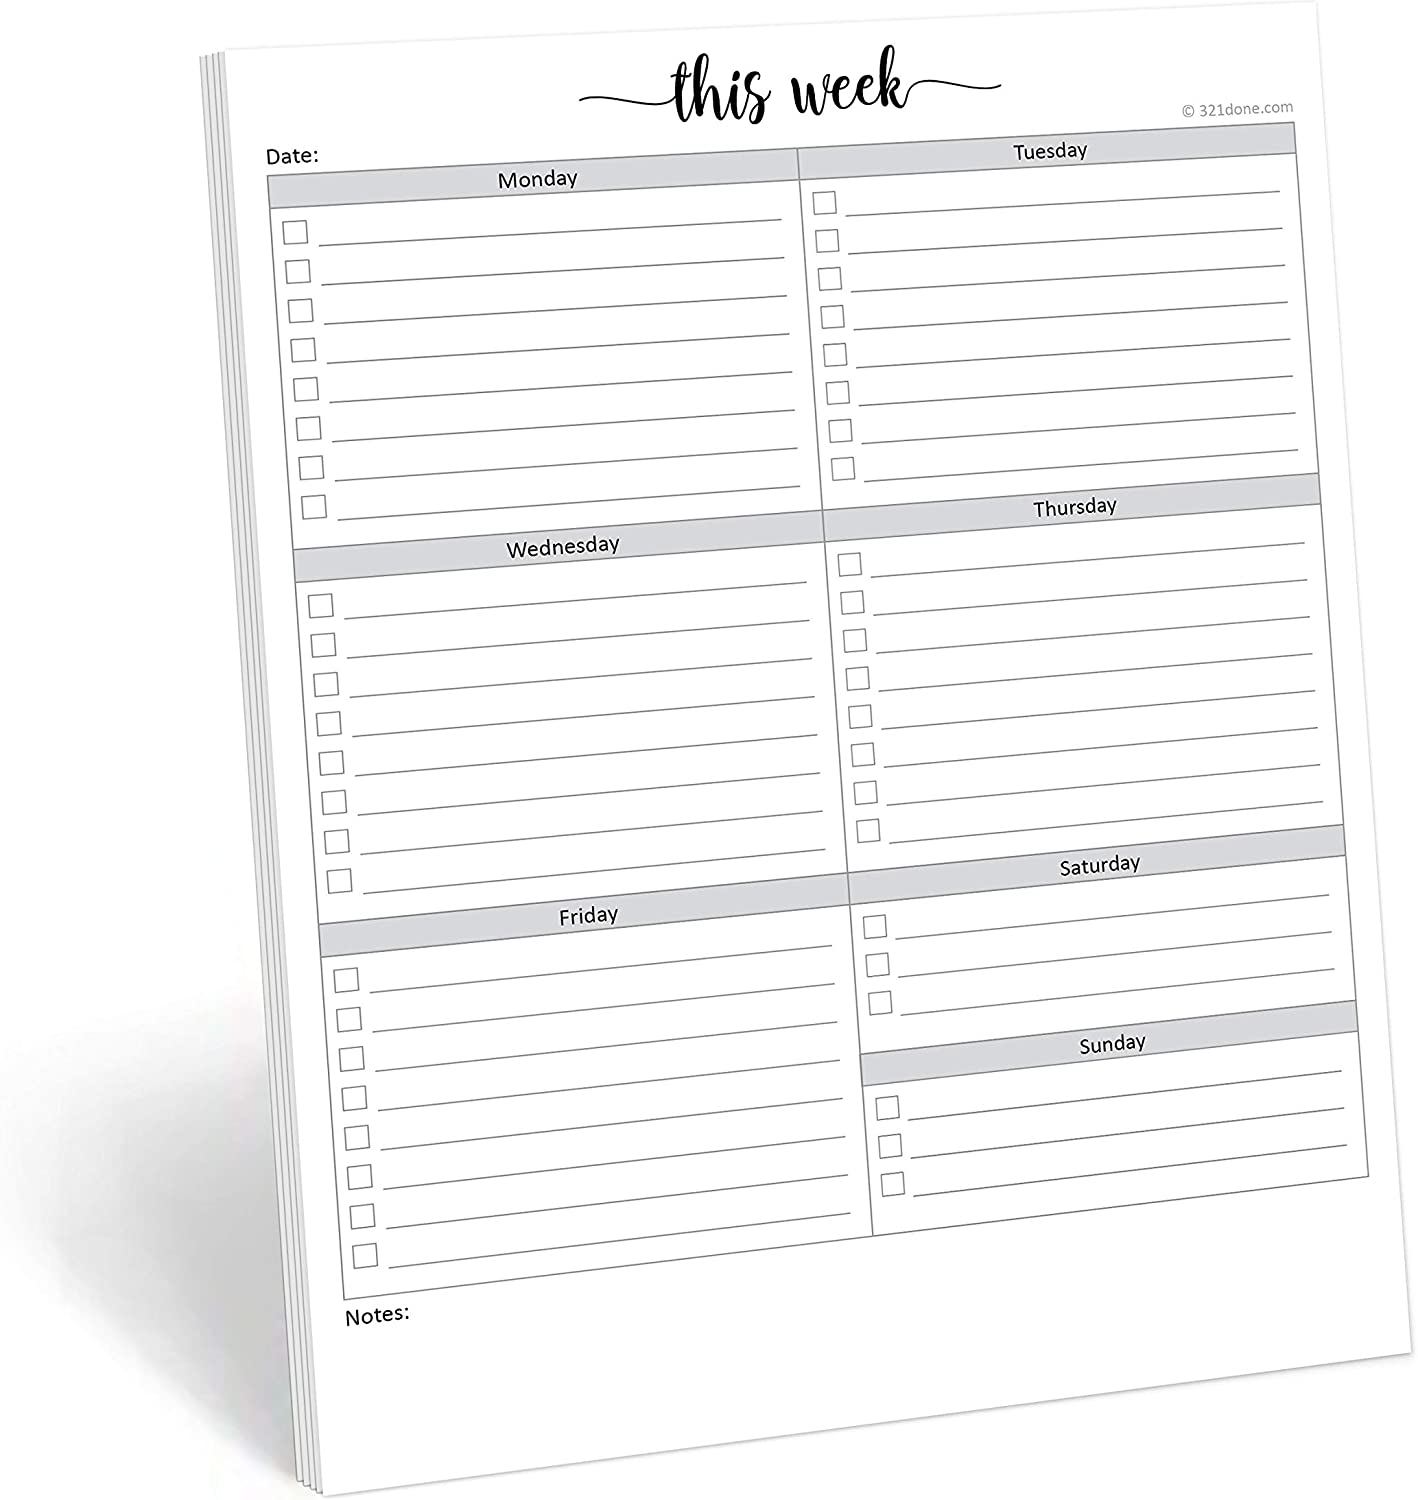 """321Done Weekly Checklist Planning Pad - 50 Sheets (8.5"""" x 11"""") - This Week to Do Notepad Tear Off, Desktop Planner Large Letter-Size - Made in USA - Simple Script"""